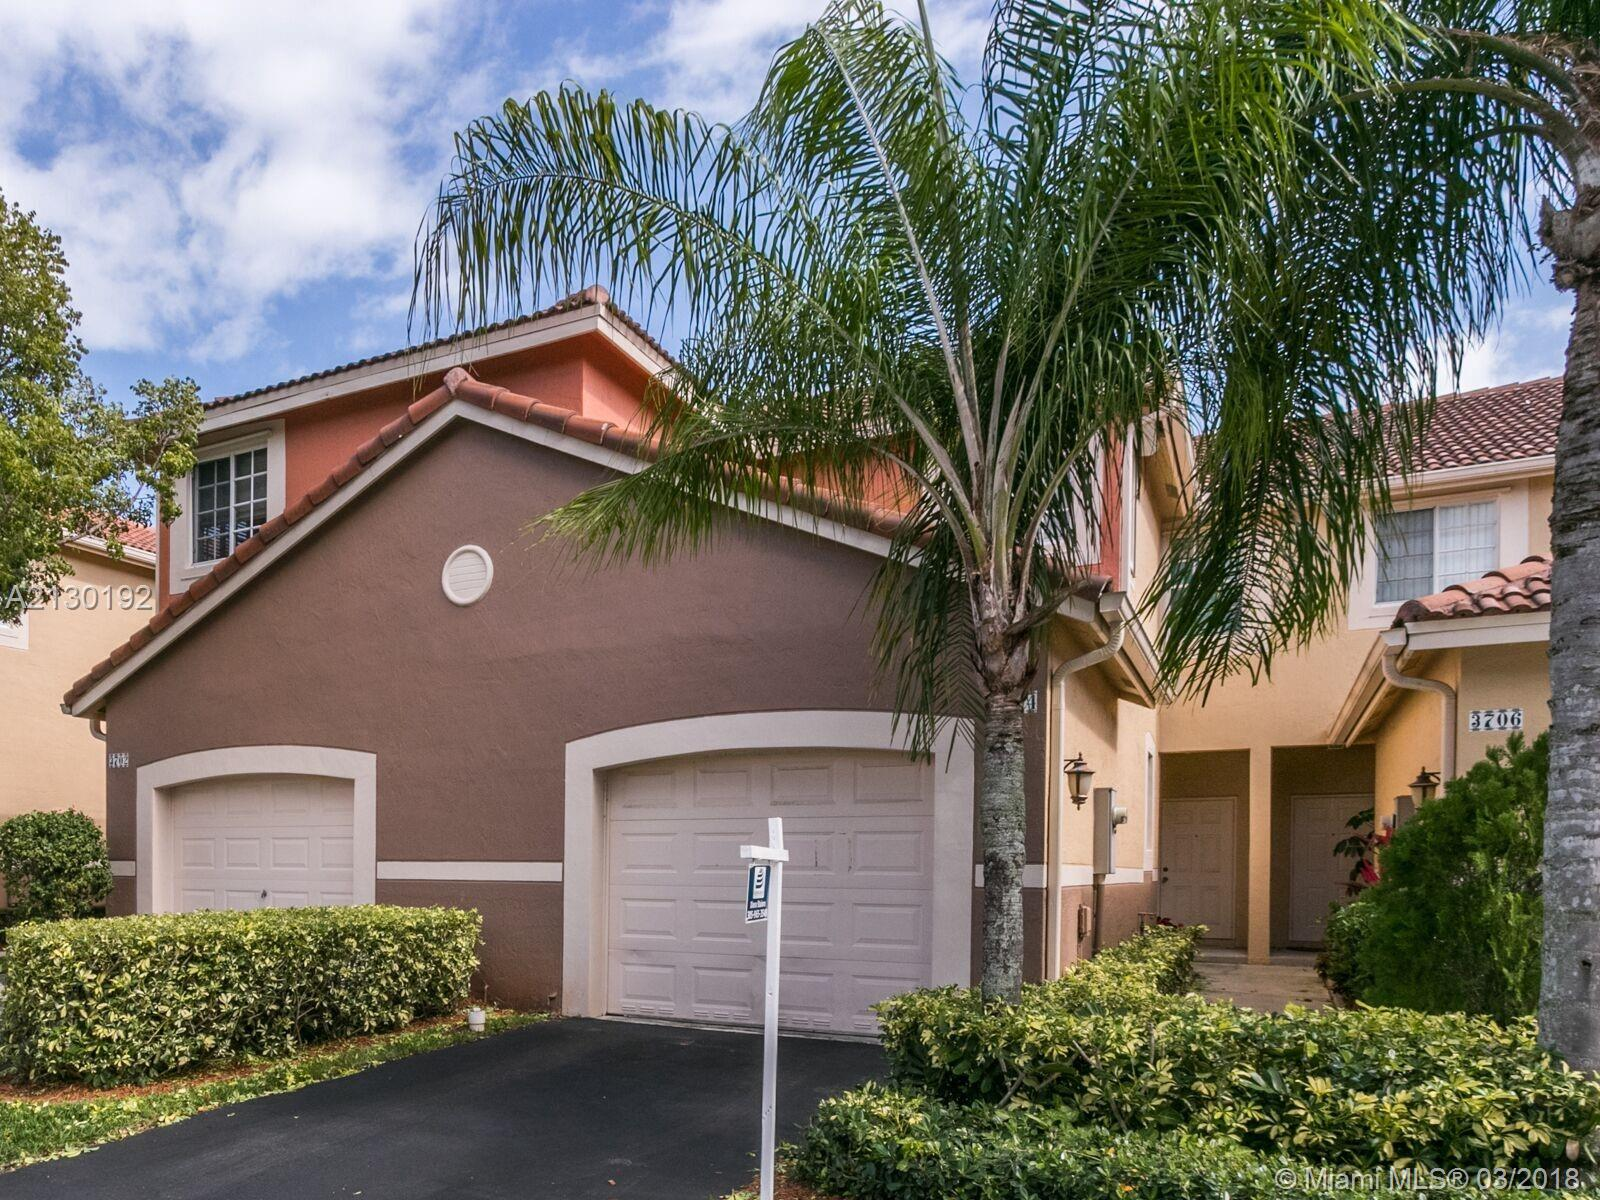 3704 San simeon cr-3704 weston--fl-33331-a2130192-Pic03